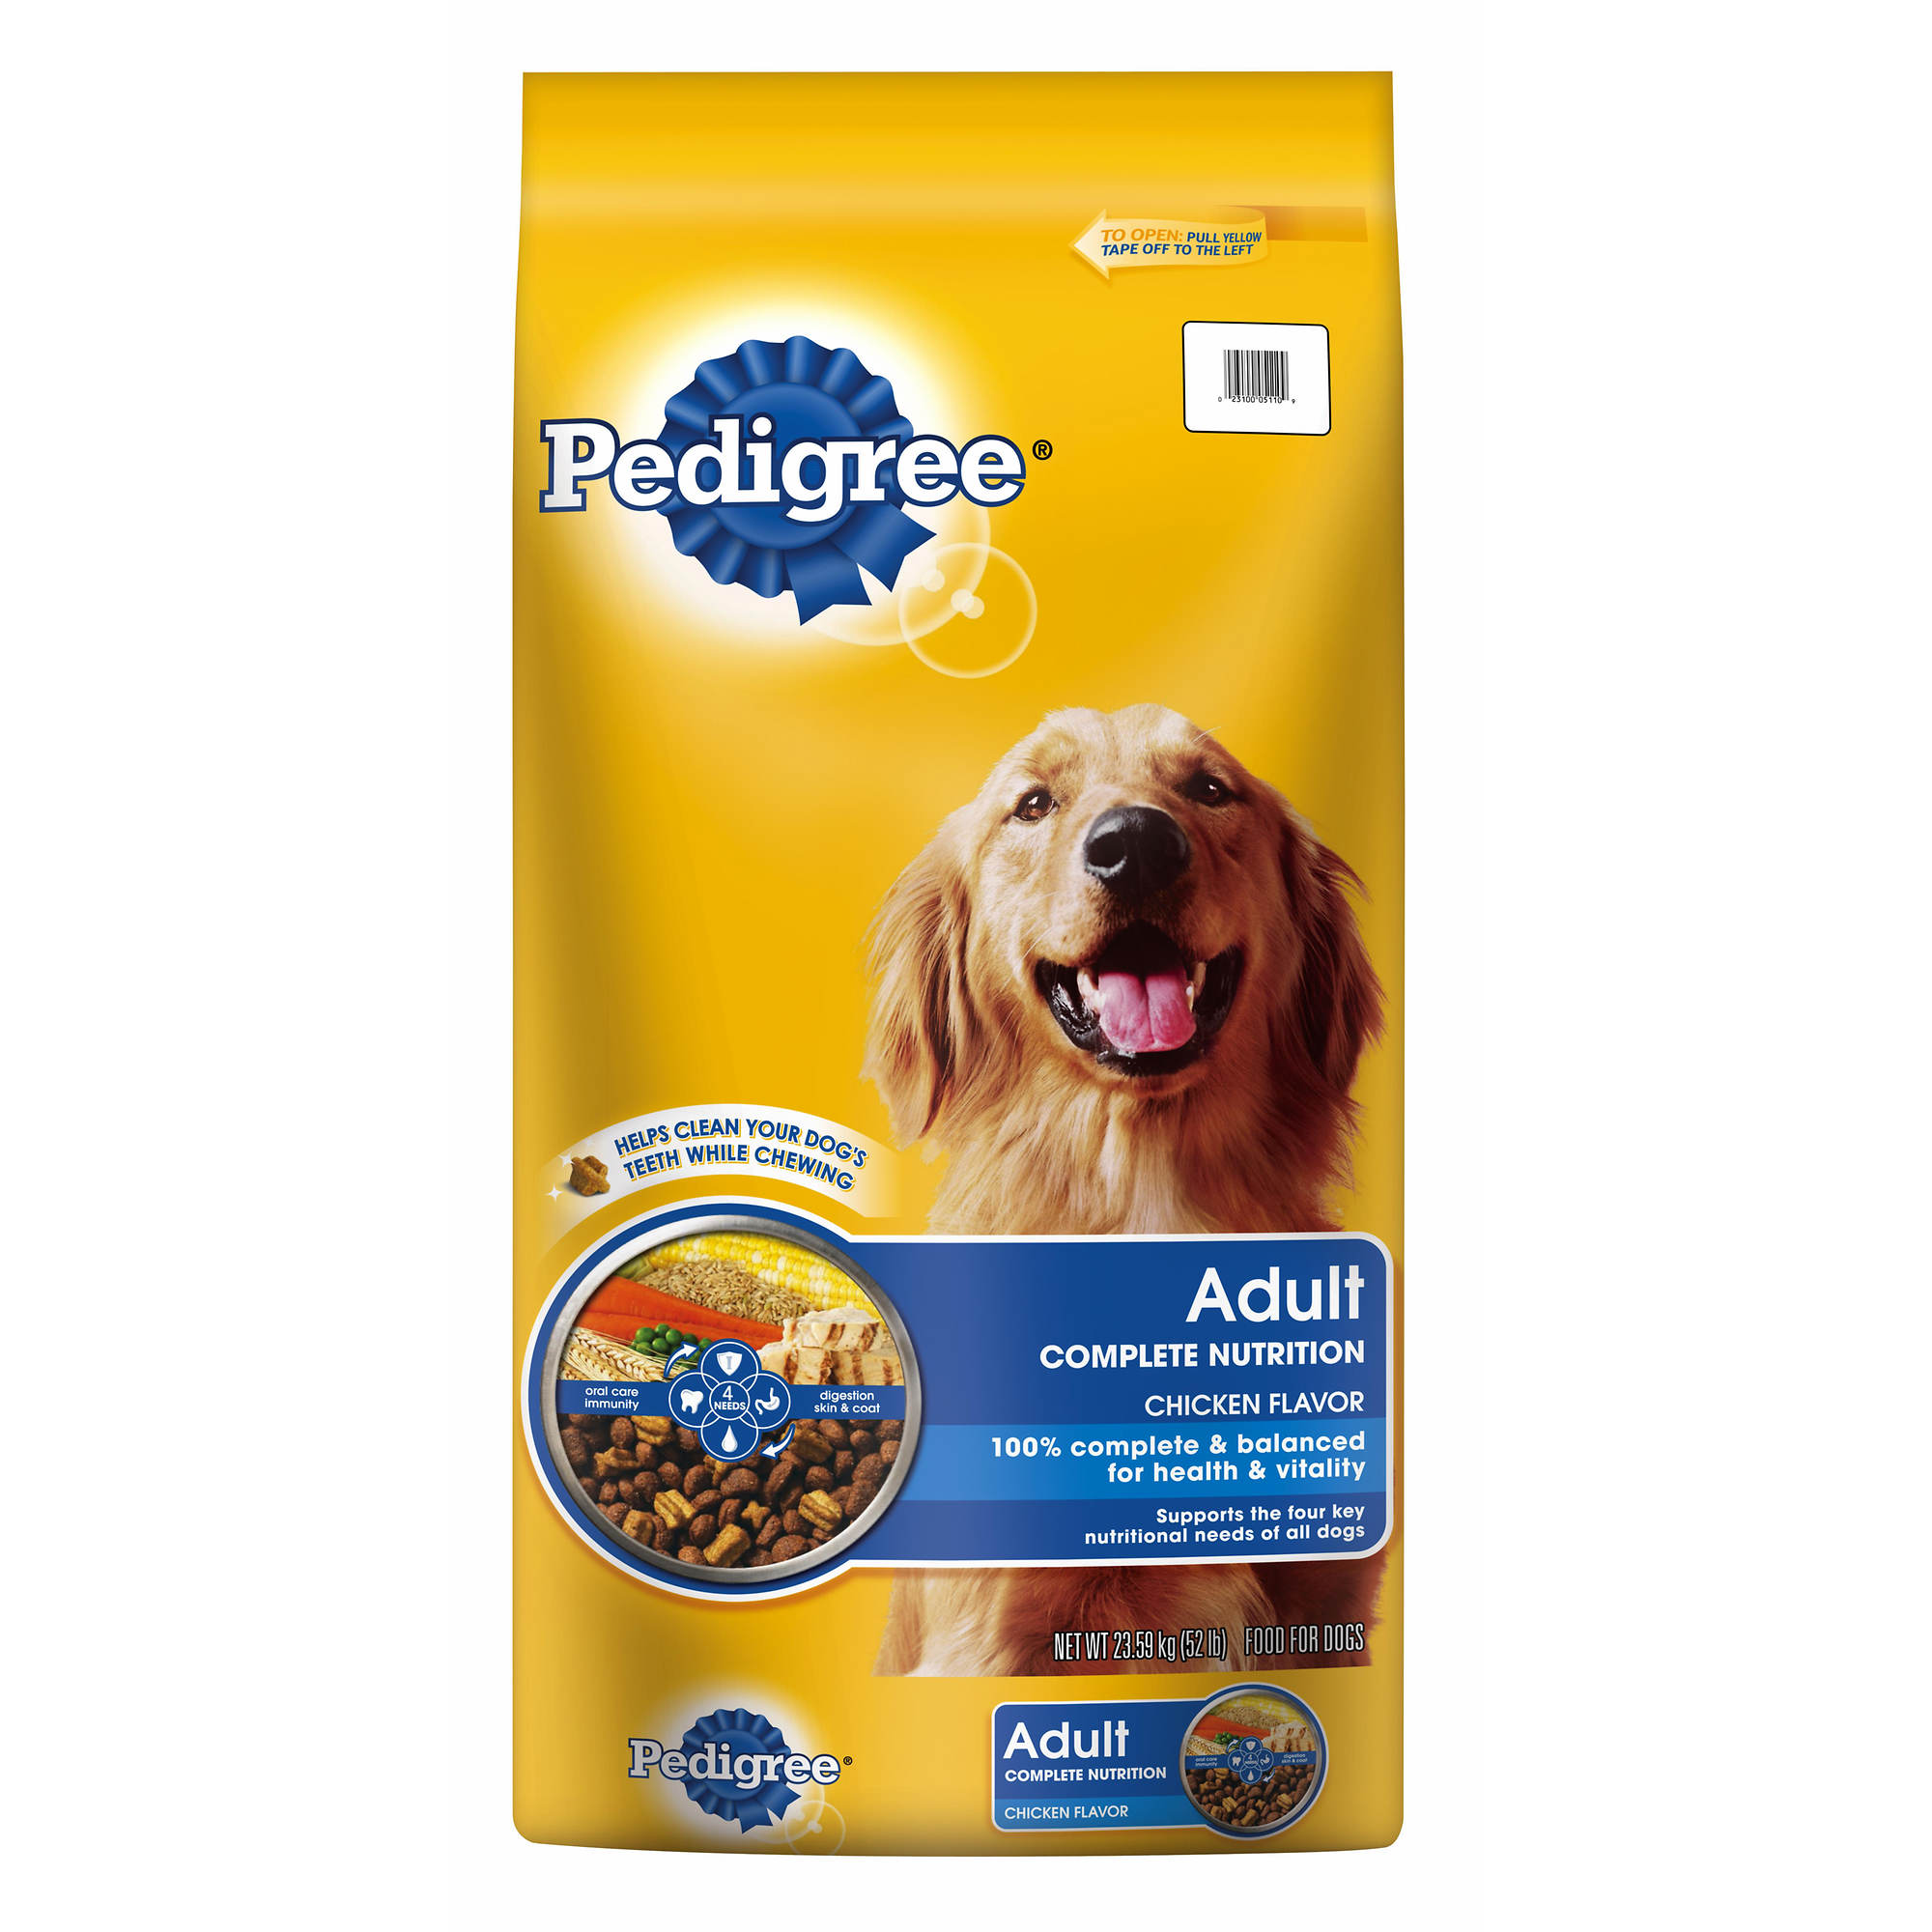 Pedigree Adult Complete Nutrition Chicken Flavor Dry Dog